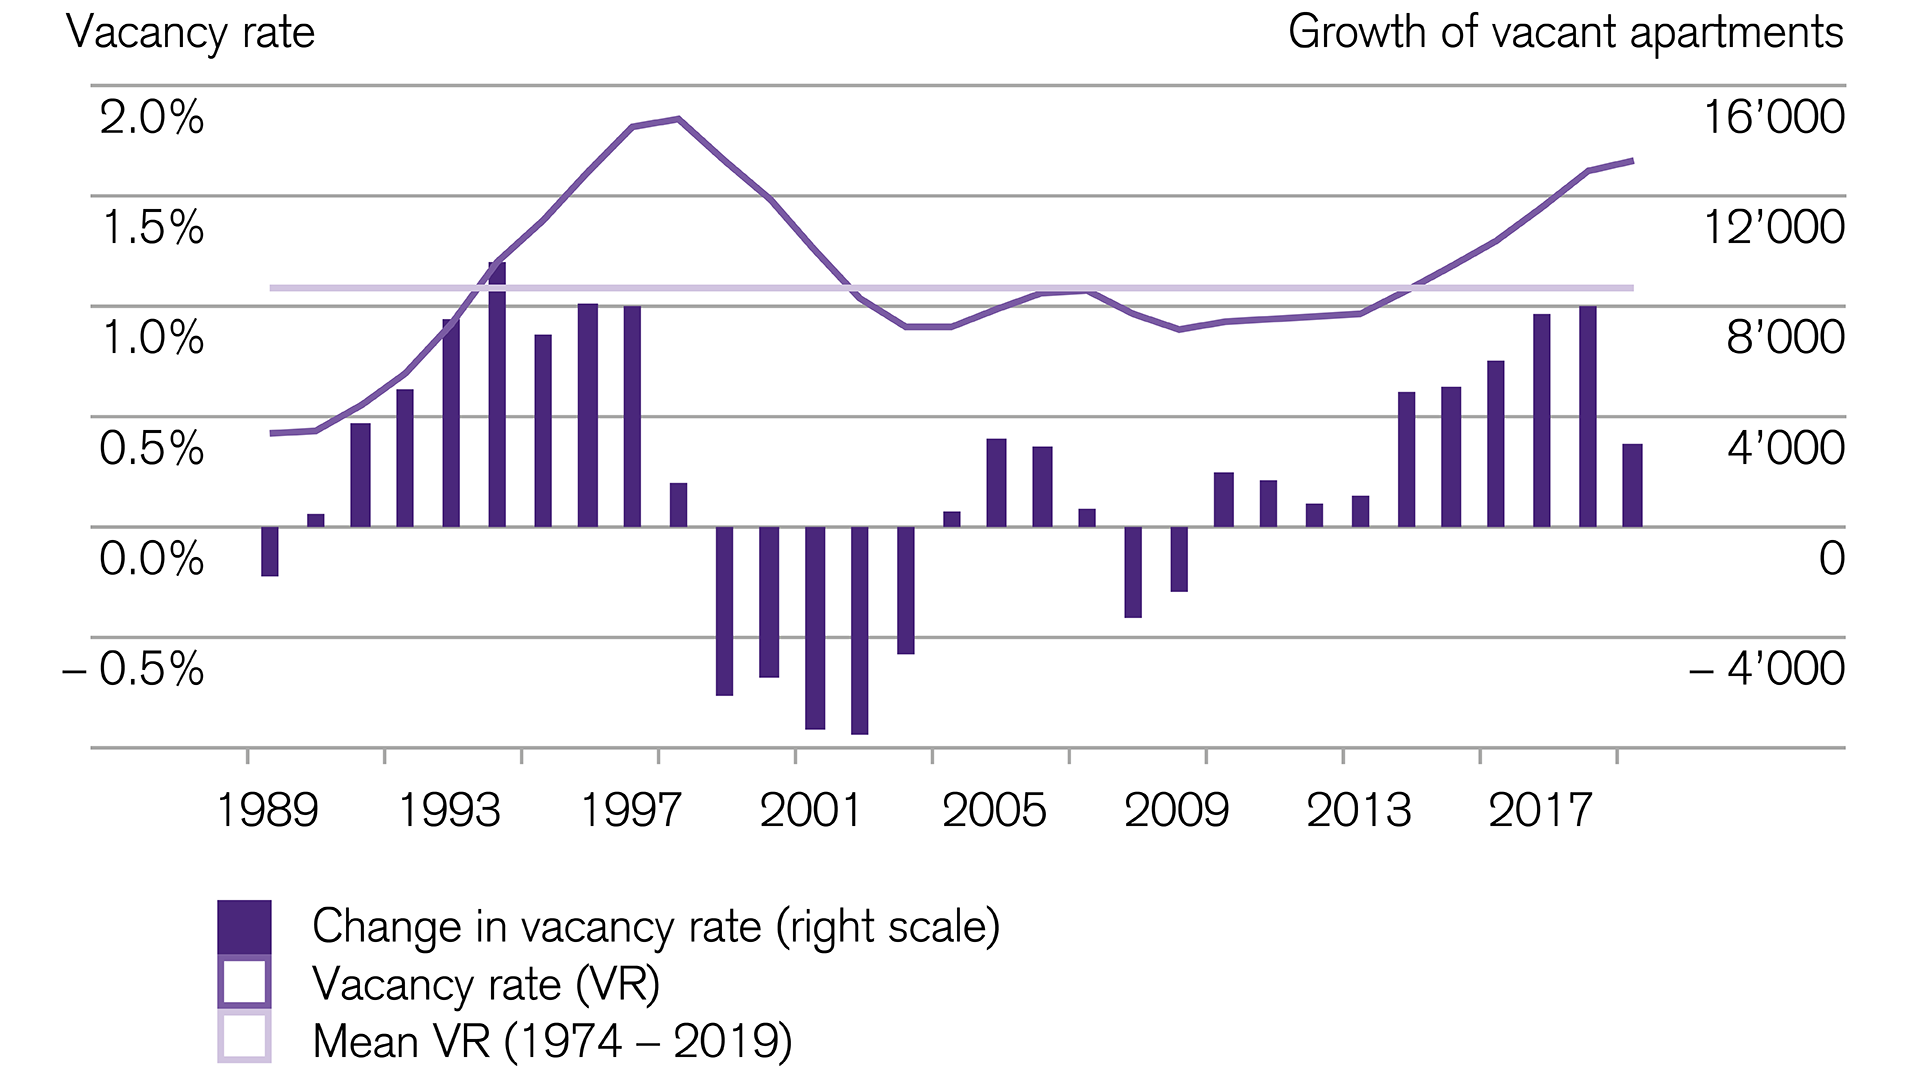 increasing vacancy rate in Switzerland